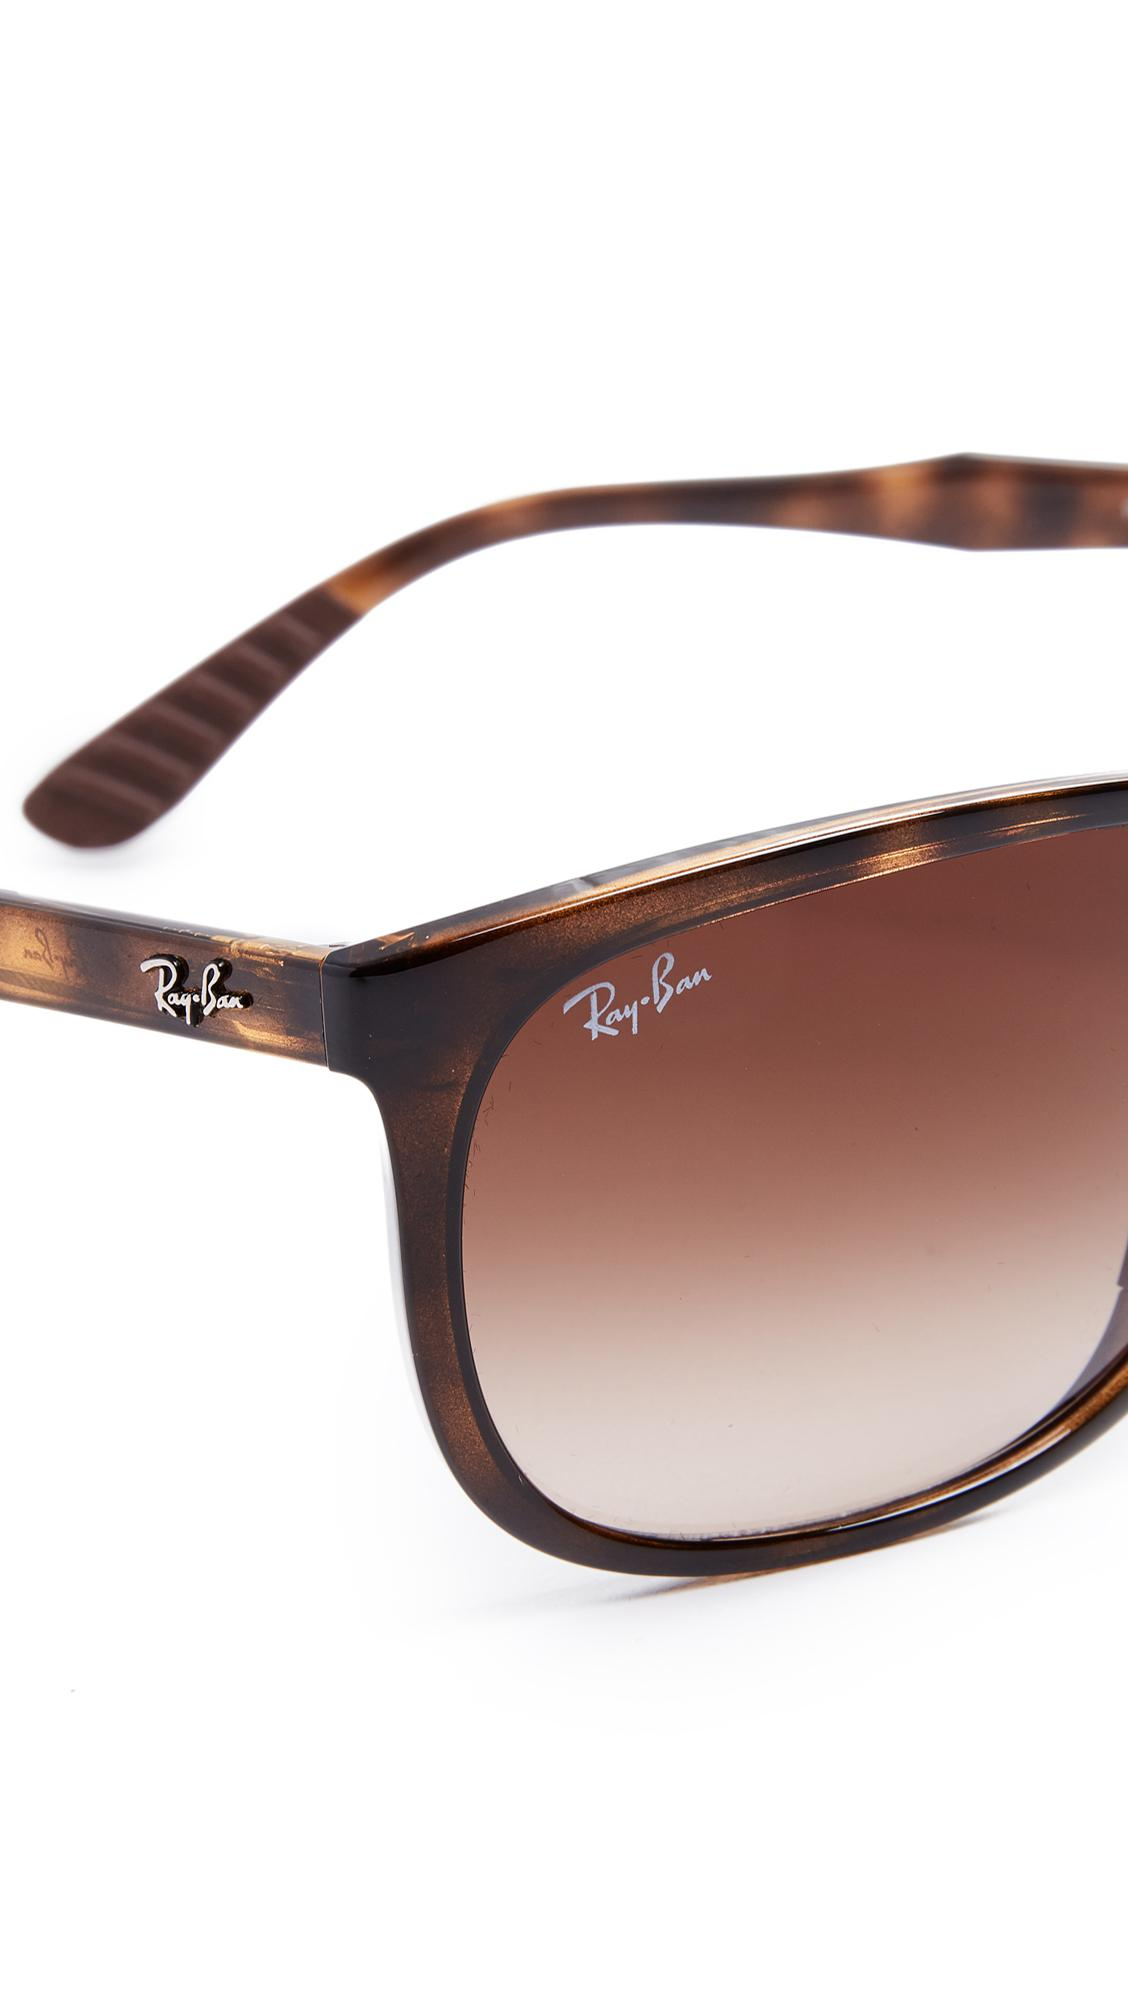 Ray-Ban Rubber Rb4291 Sunglasses in Brown for Men